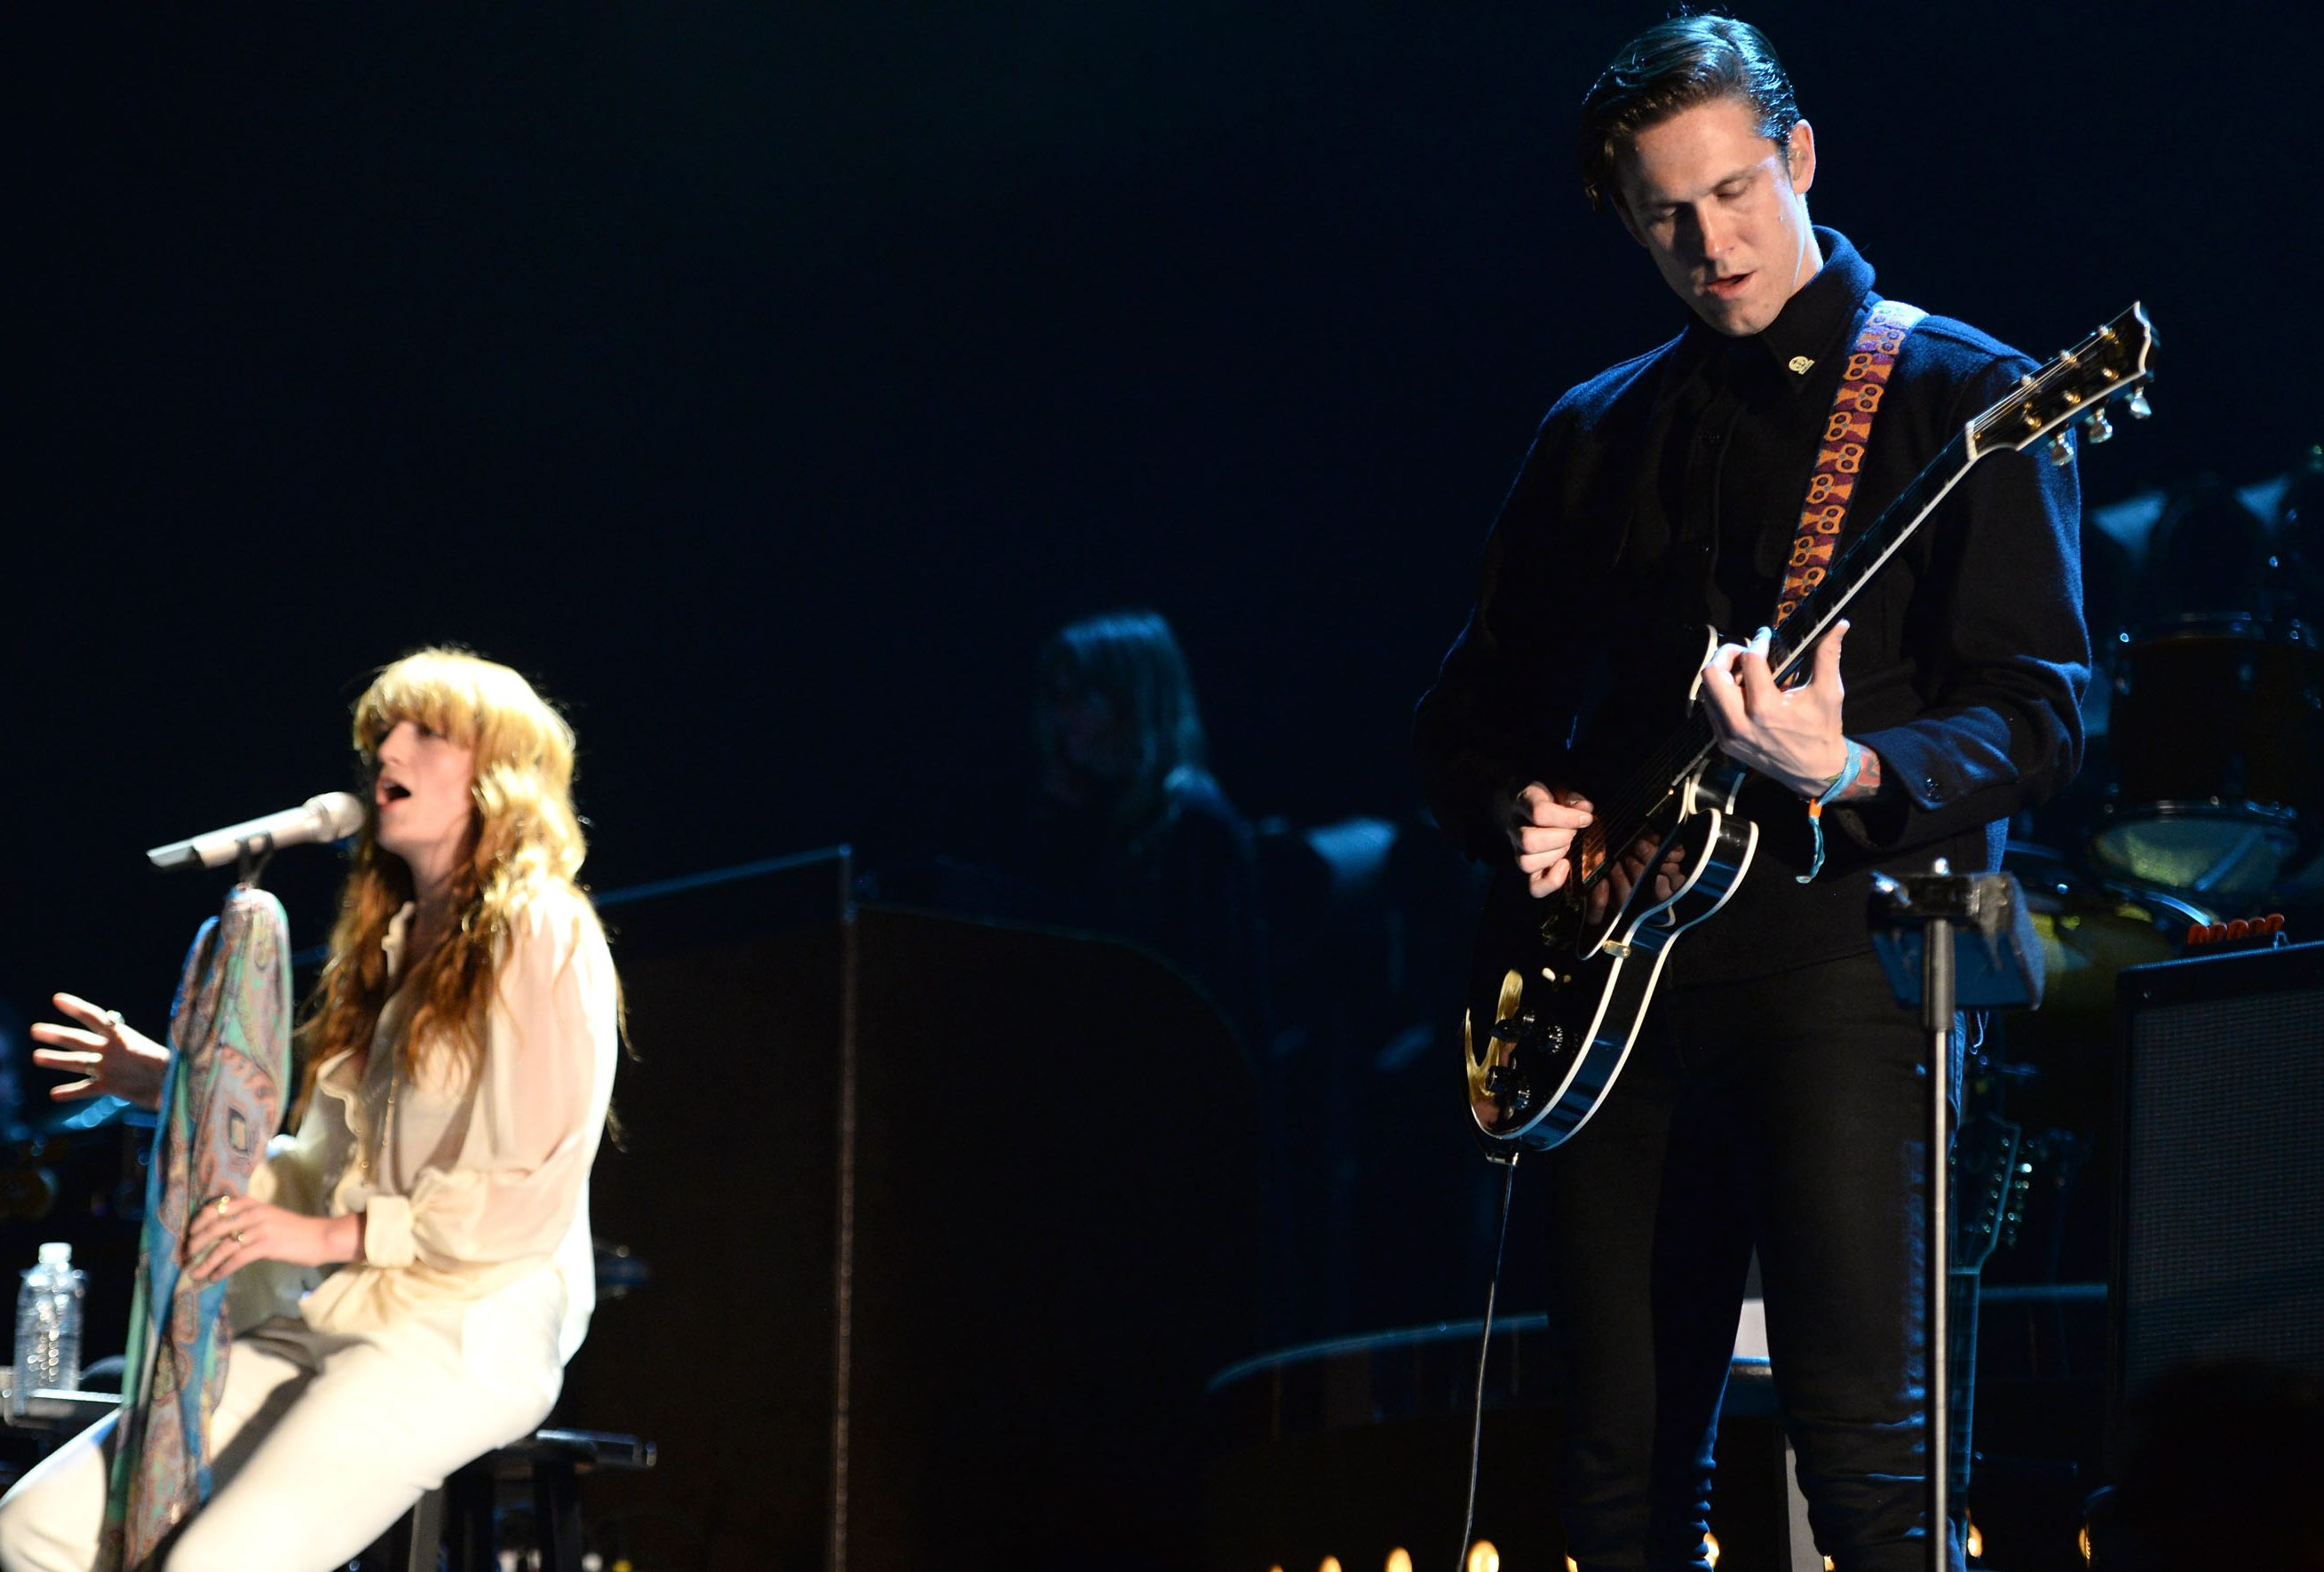 Florence And The Machine guitarist backtracks over controversial Euro 2016 tweet